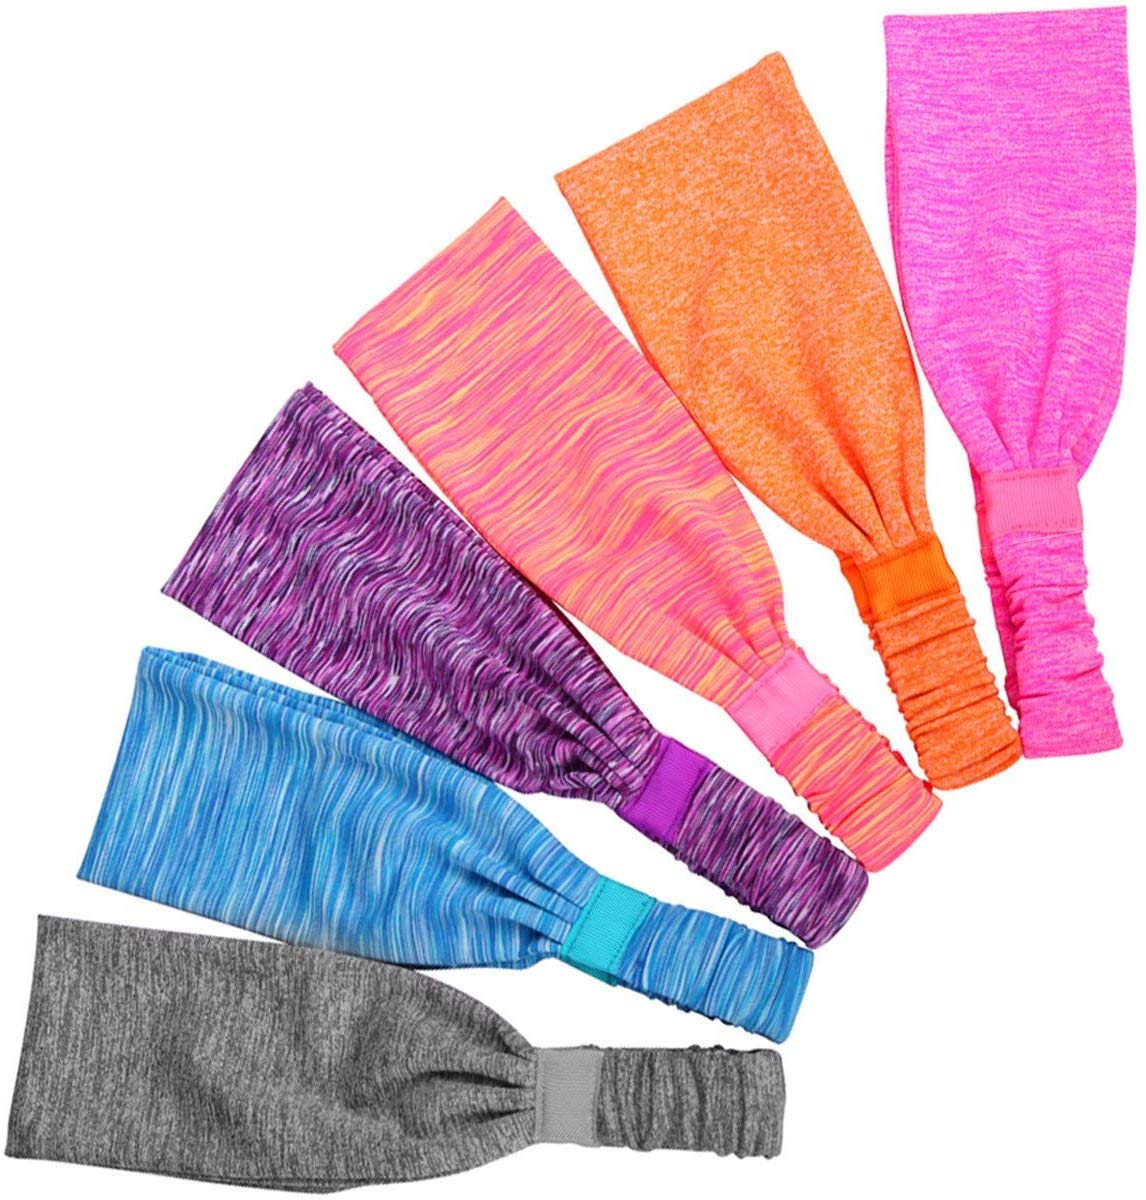 Dream Wings 6 Pack Sports Headband,Sports Perspiration /& Forehead Protection Suite Workout Headbands for Women and Men Non Slip